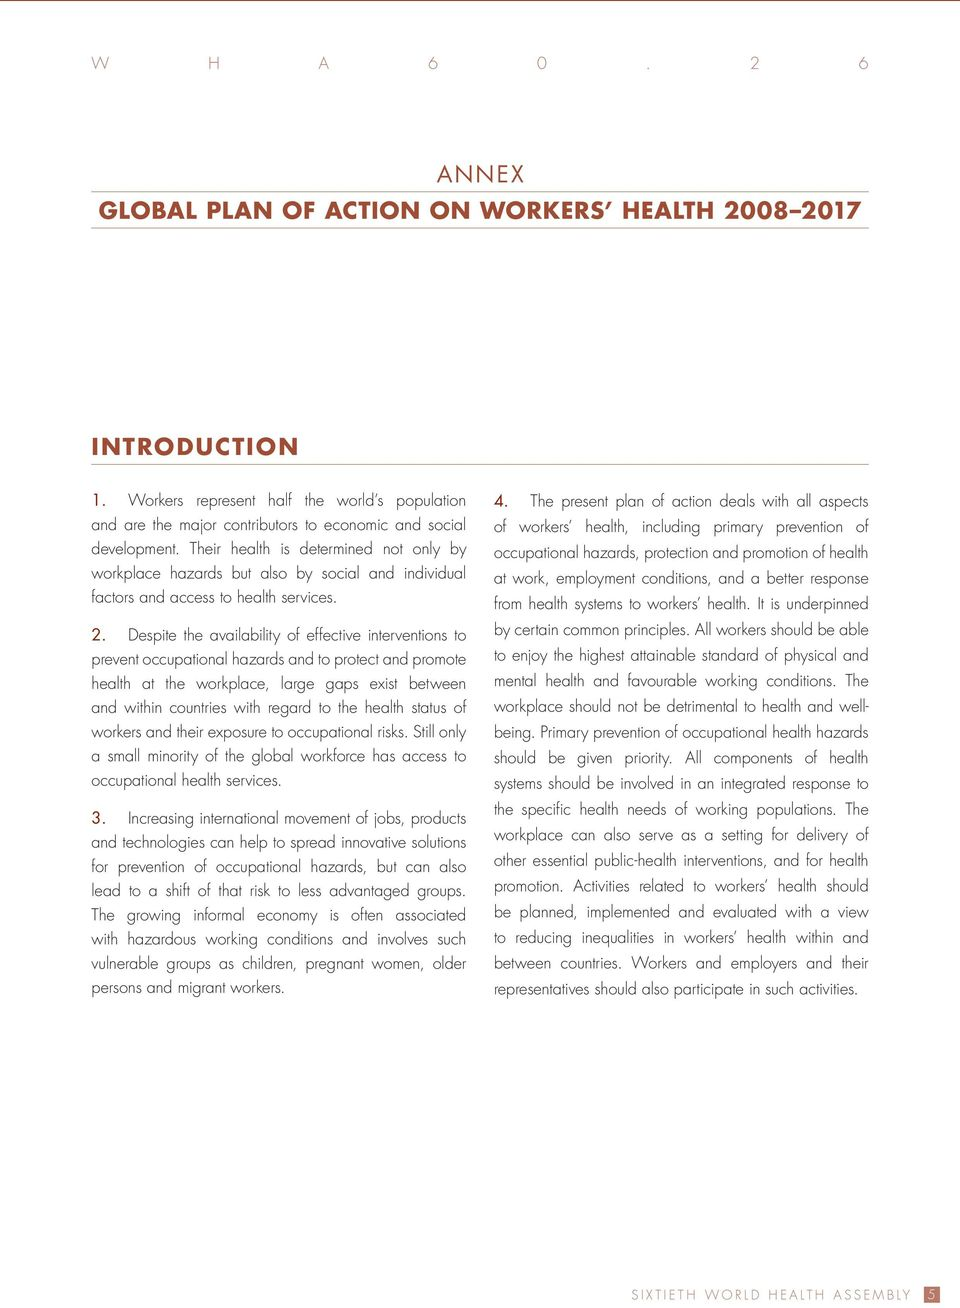 Despite the availability of effective interventions to prevent occupational hazards and to protect and promote health at the workplace, large gaps exist between and within countries with regard to